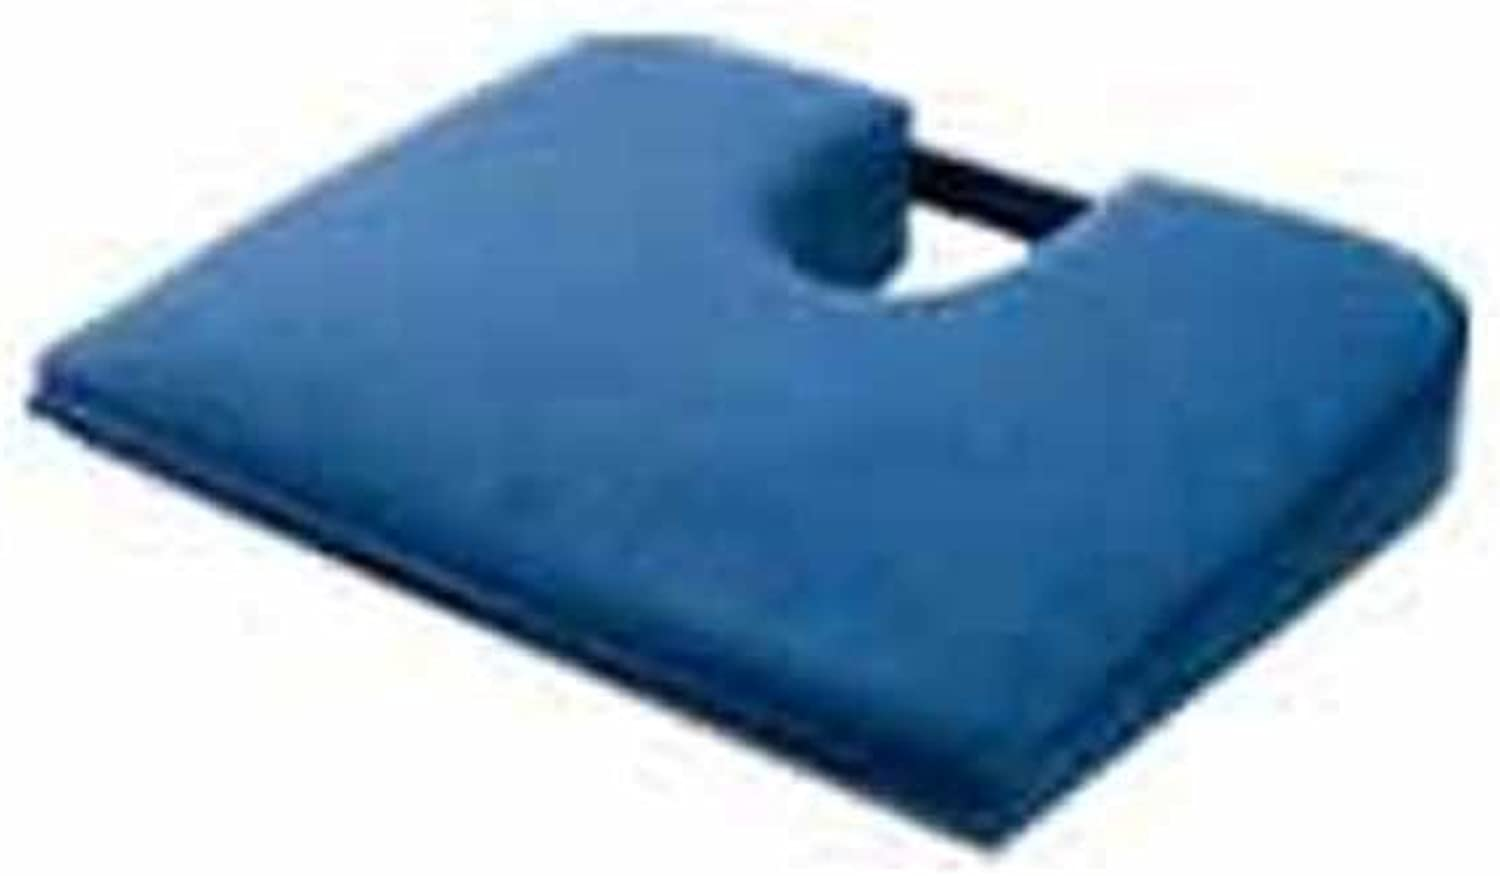 TUSH CUSH Seat Cushion - Small Home Office Car Compu Computer Ergonomic Orthopedic Chair Cushion - Navy Velour Fabric